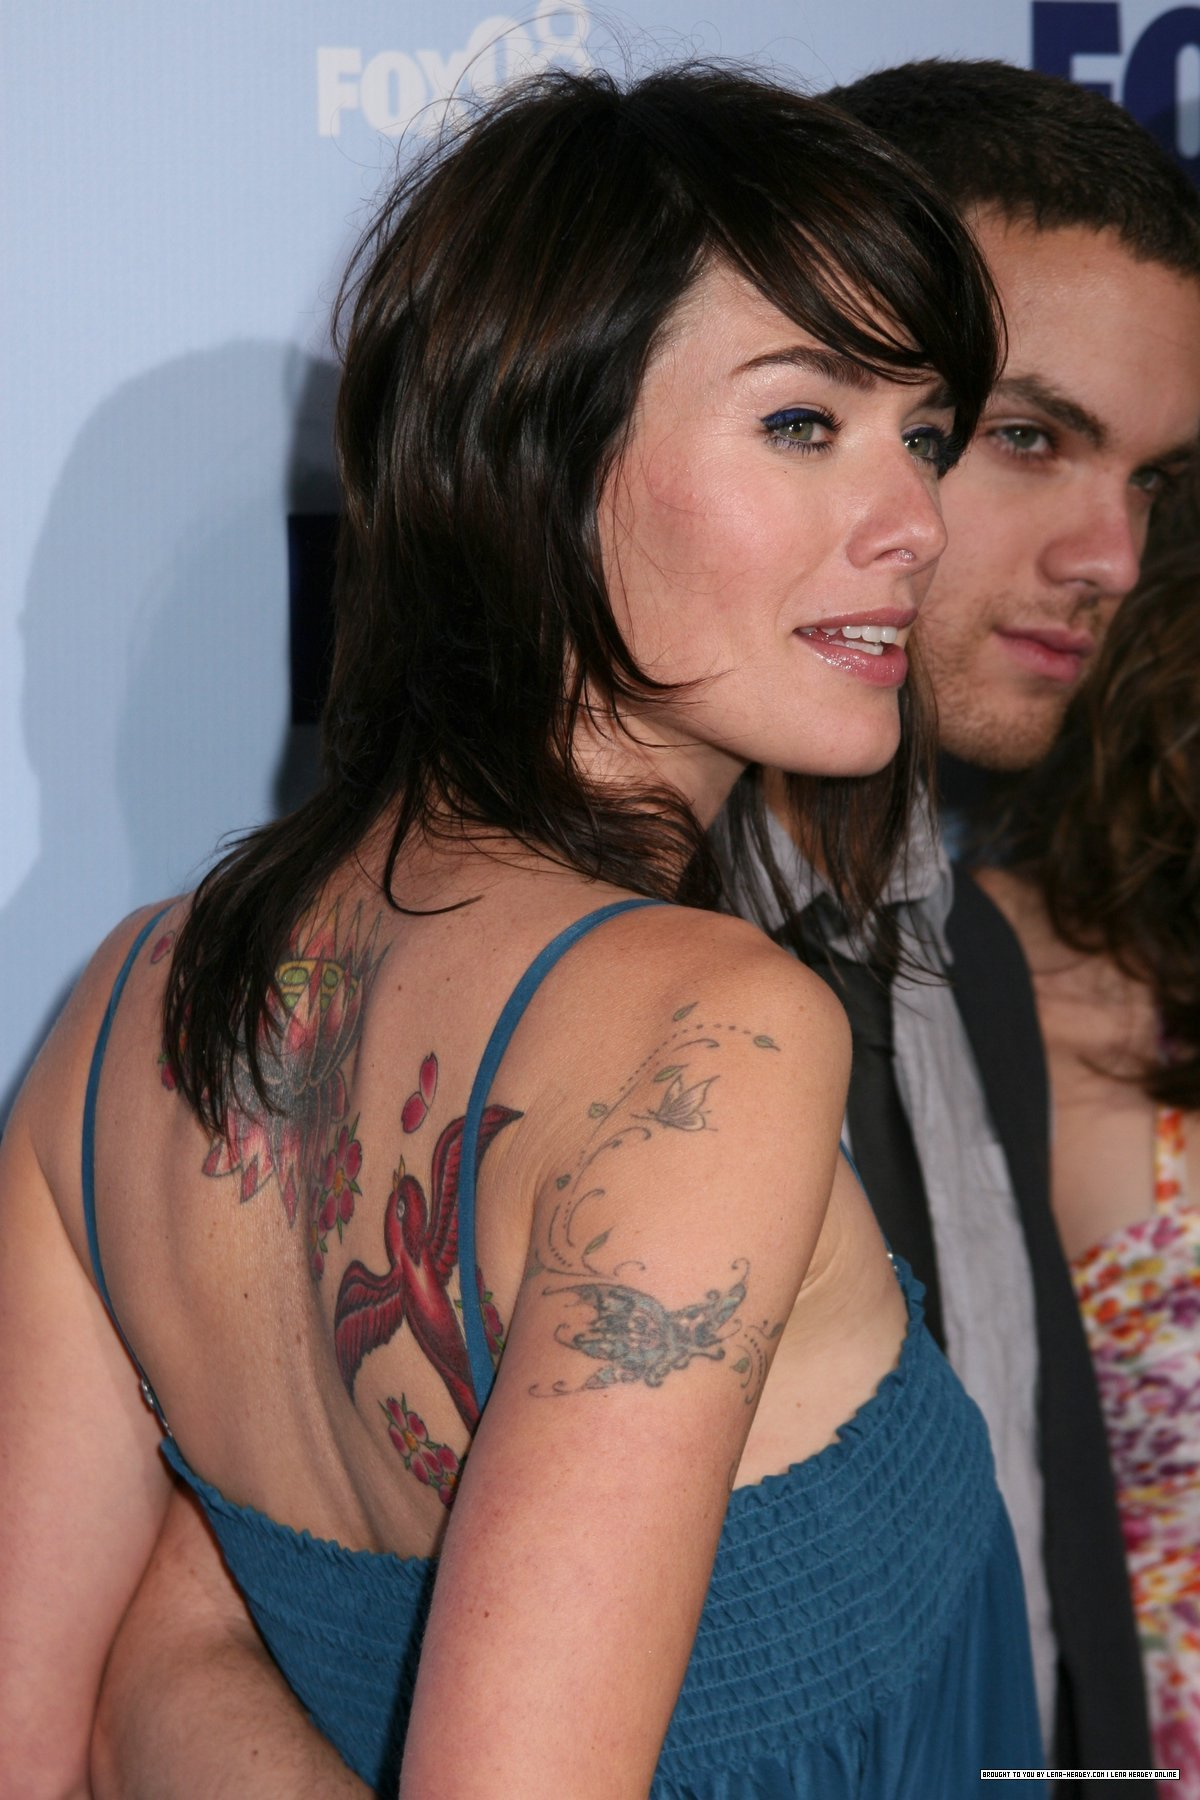 The tattoos of Lena Headey